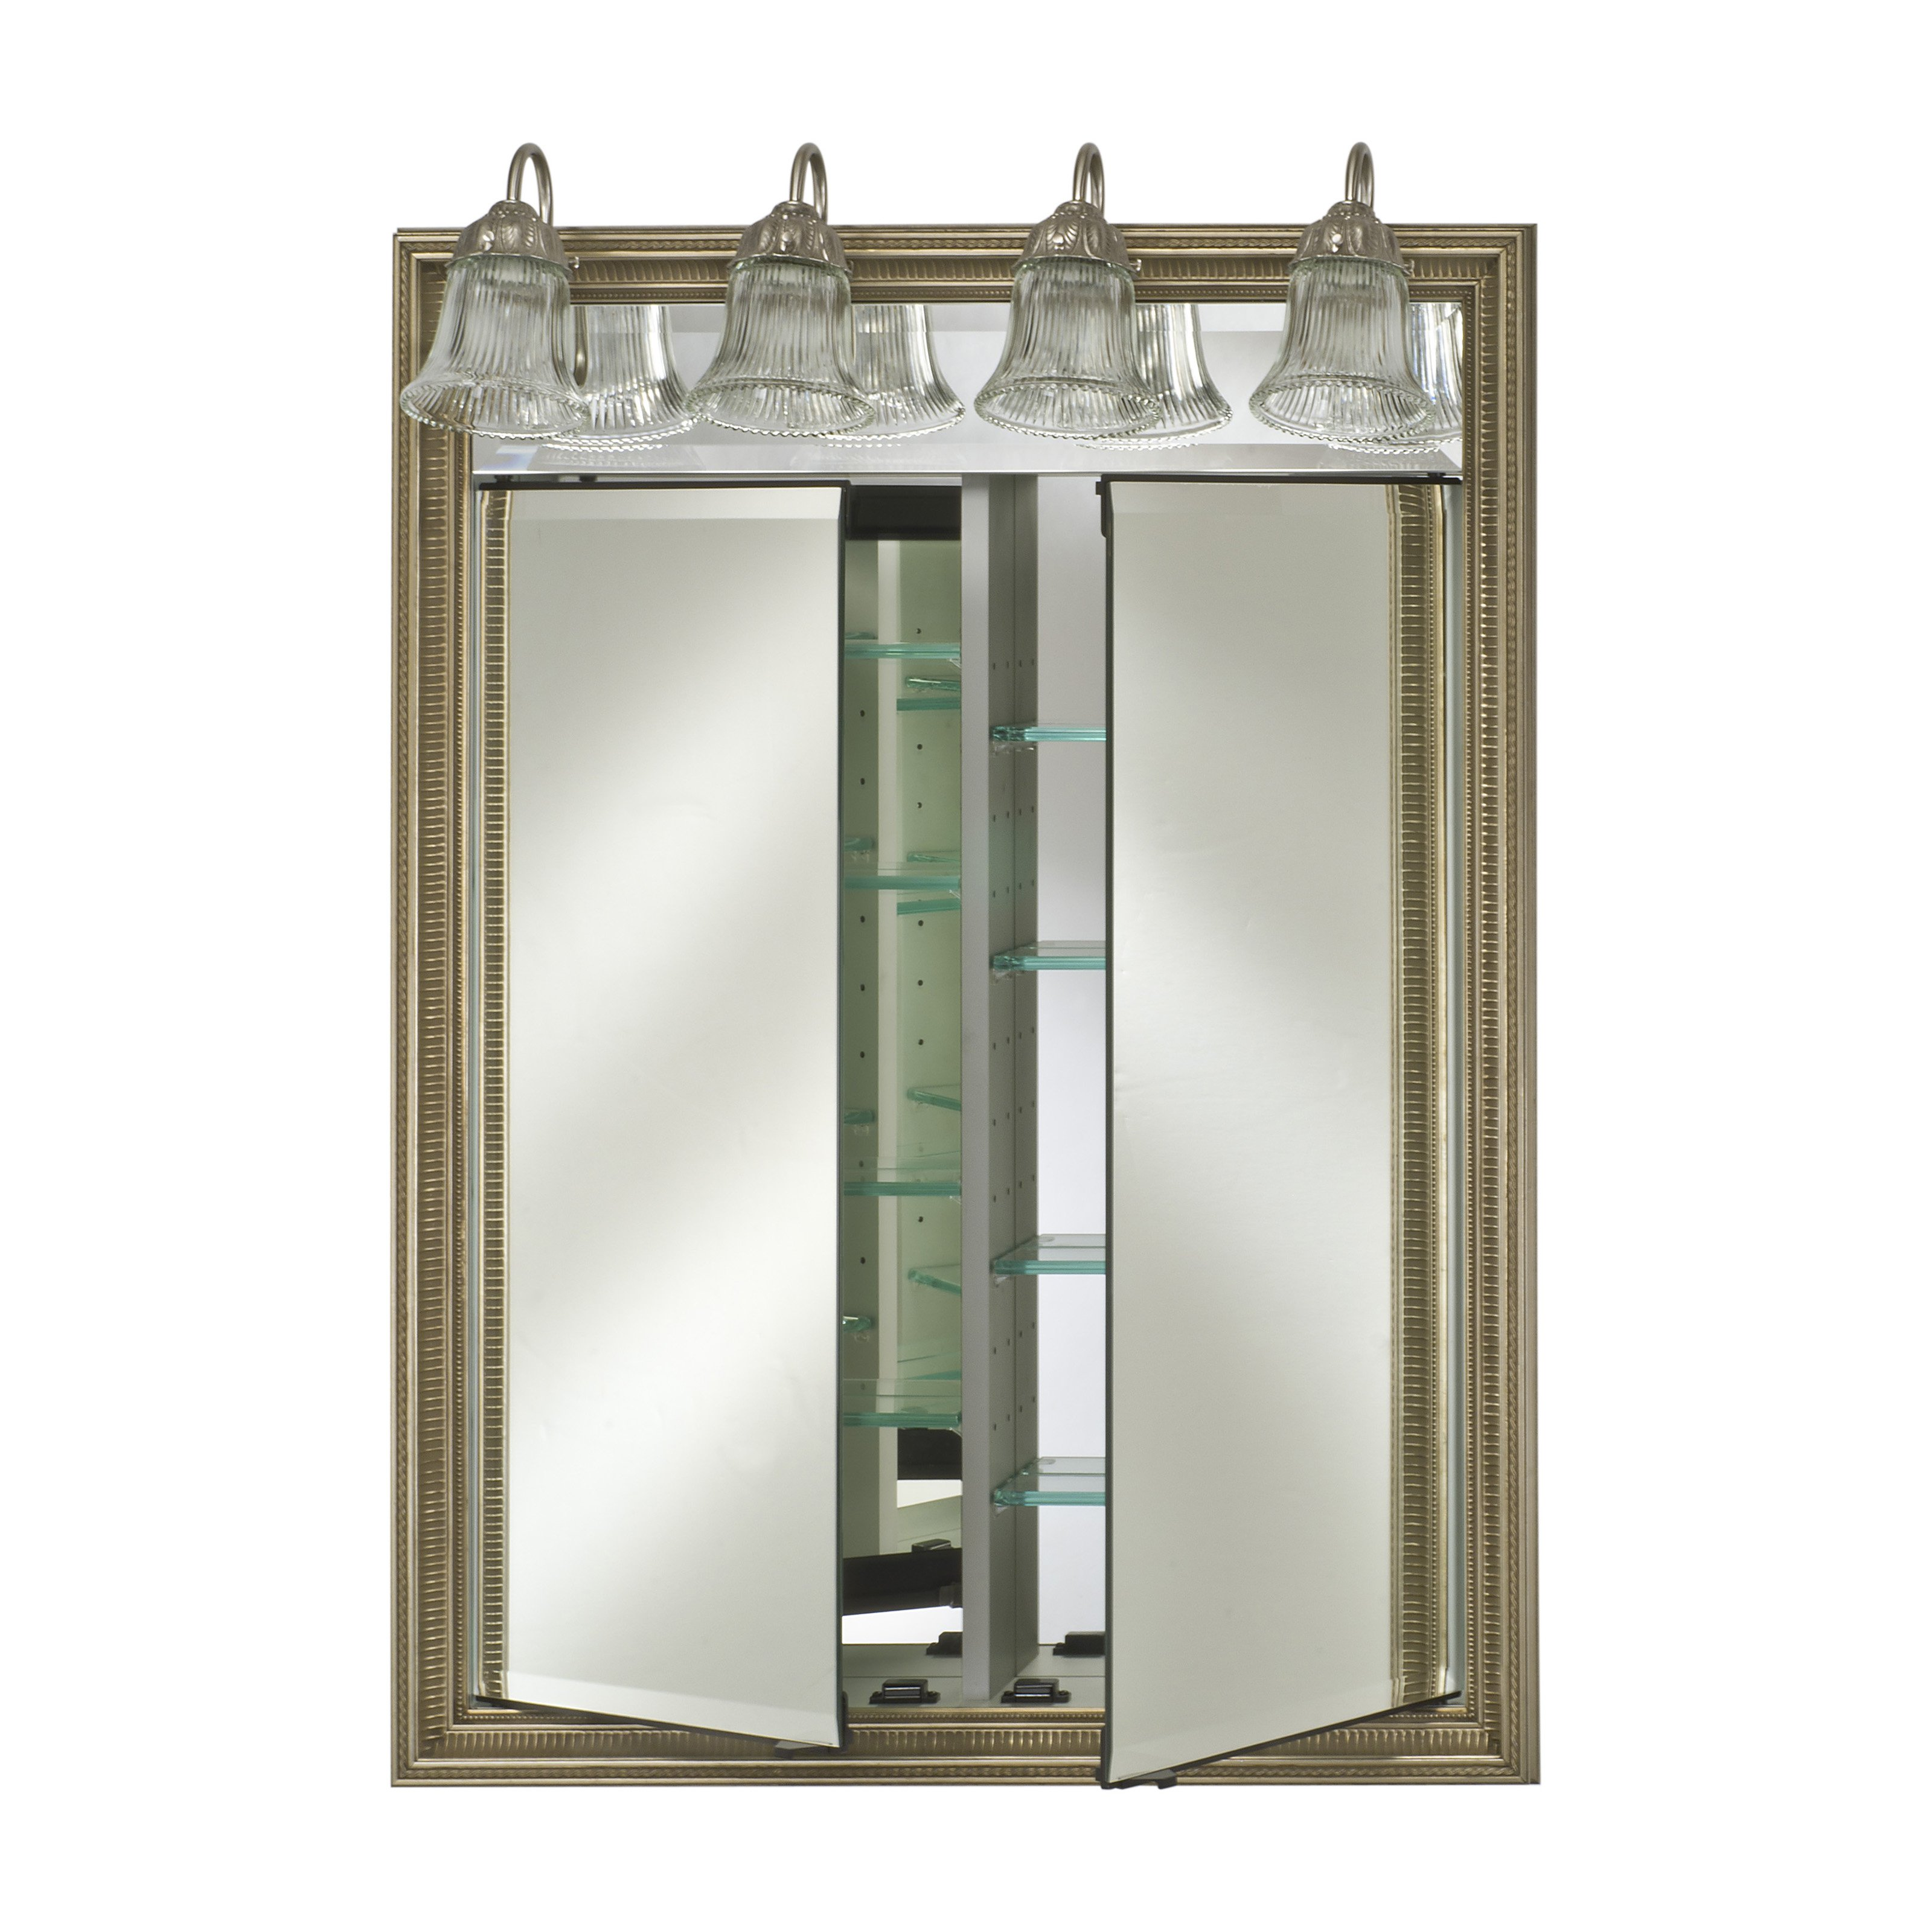 Afina Signature Traditional Lighted Double Door 31W x 40H in. Recessed Medicine Cabinet